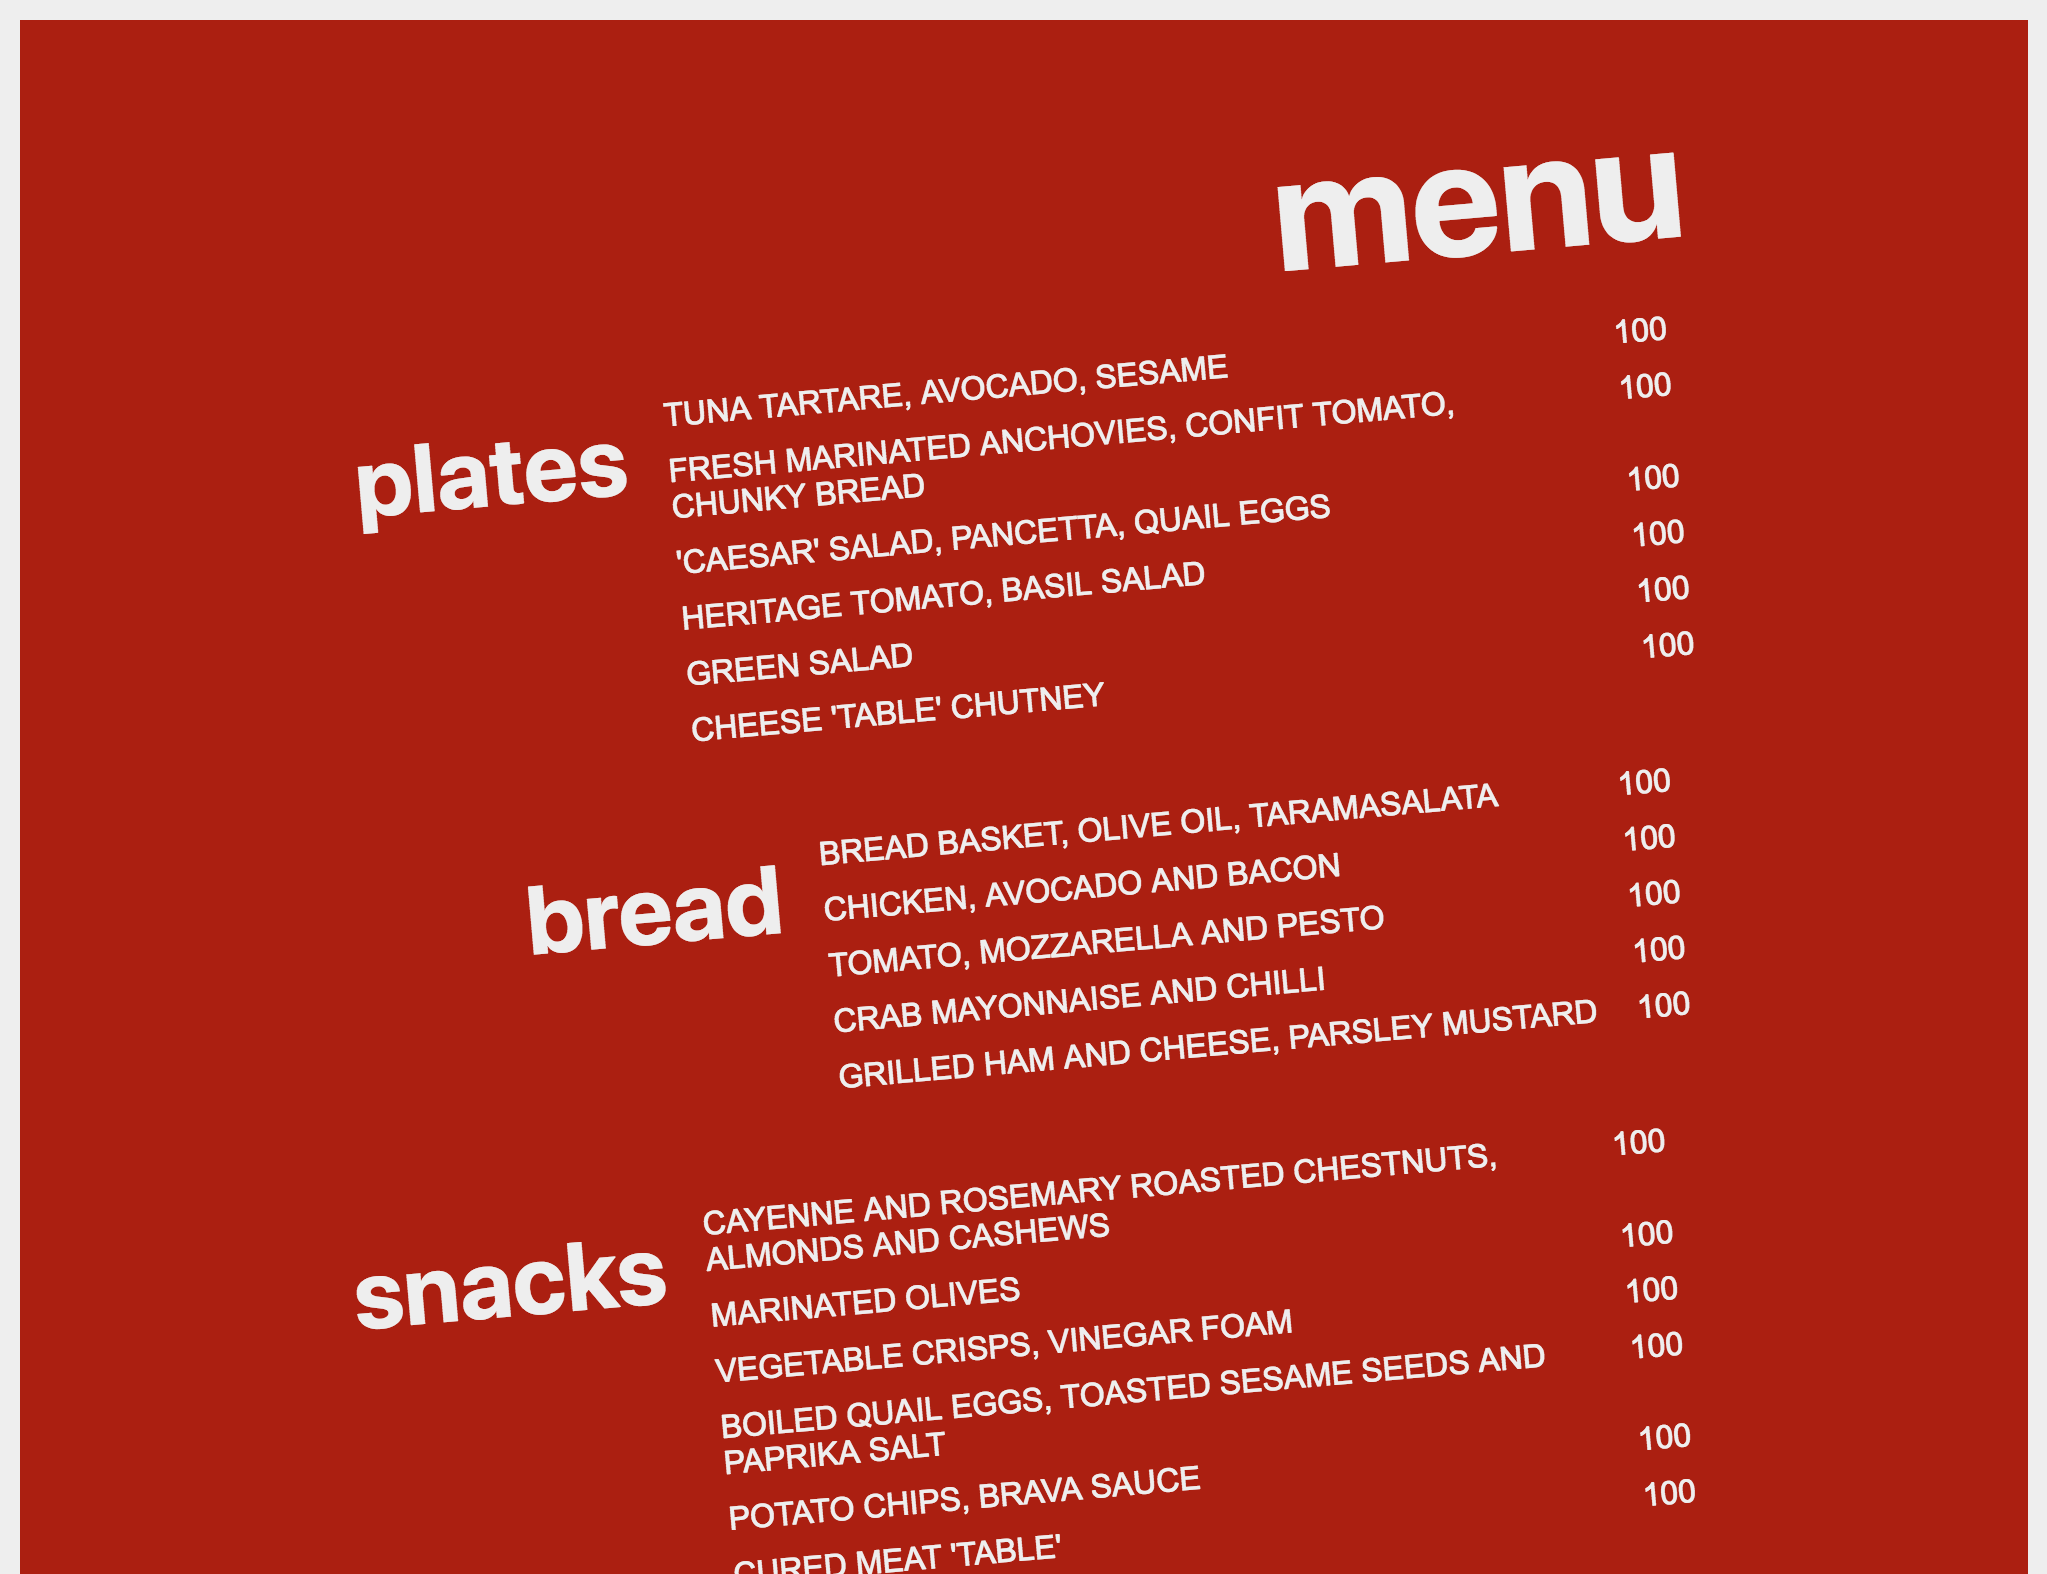 menu with styles